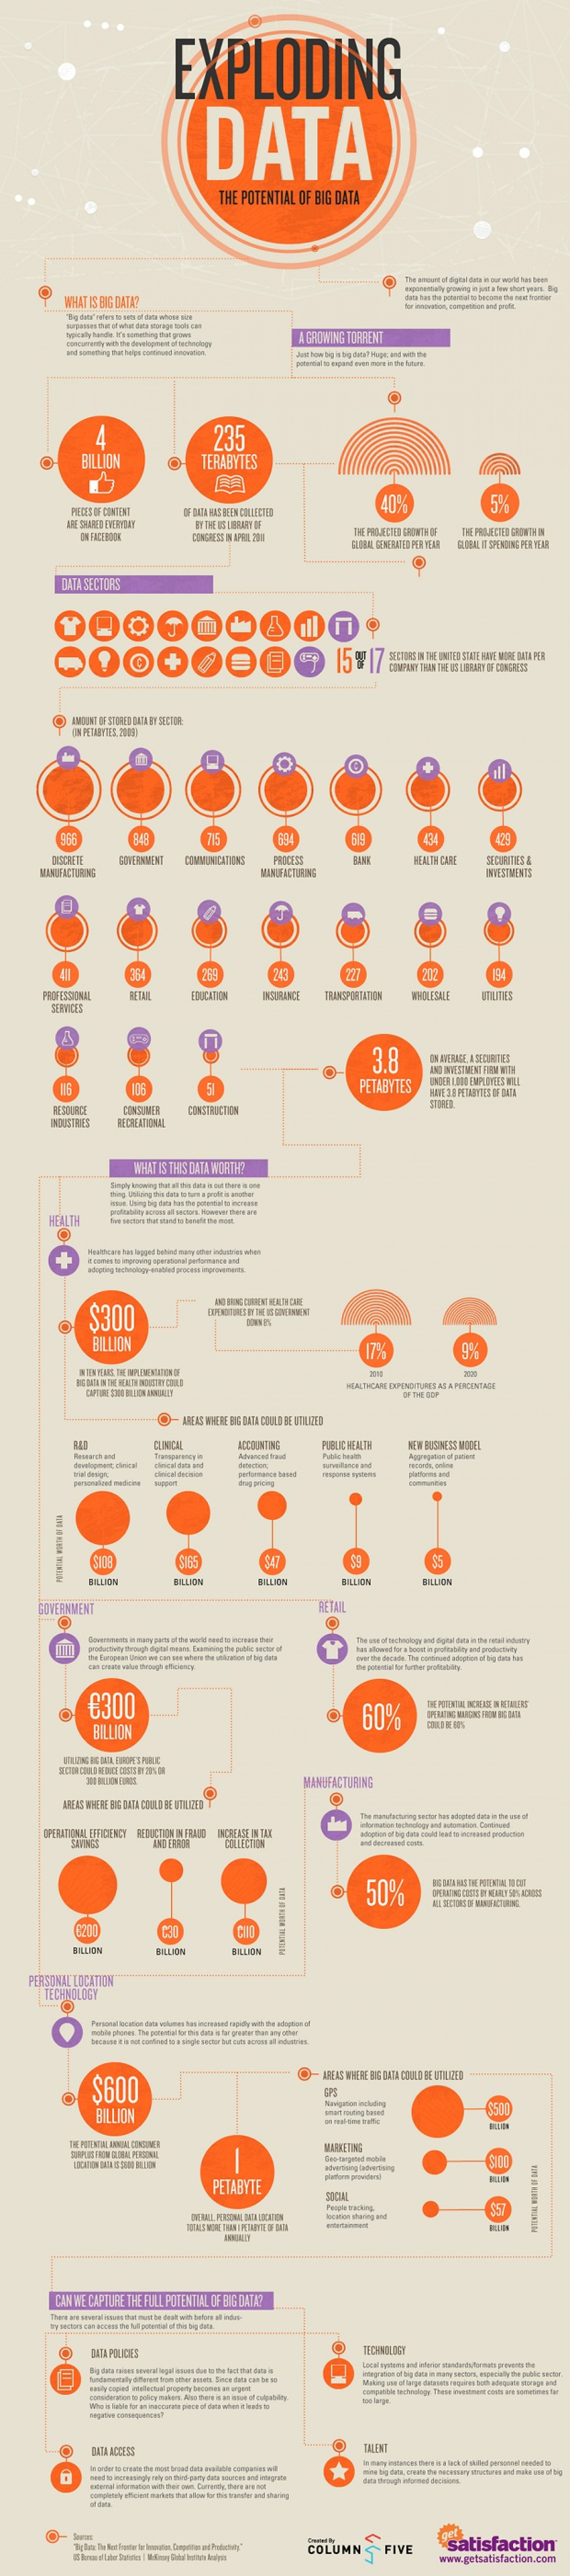 Exploding Data: The Potential of Big Data  Infographic